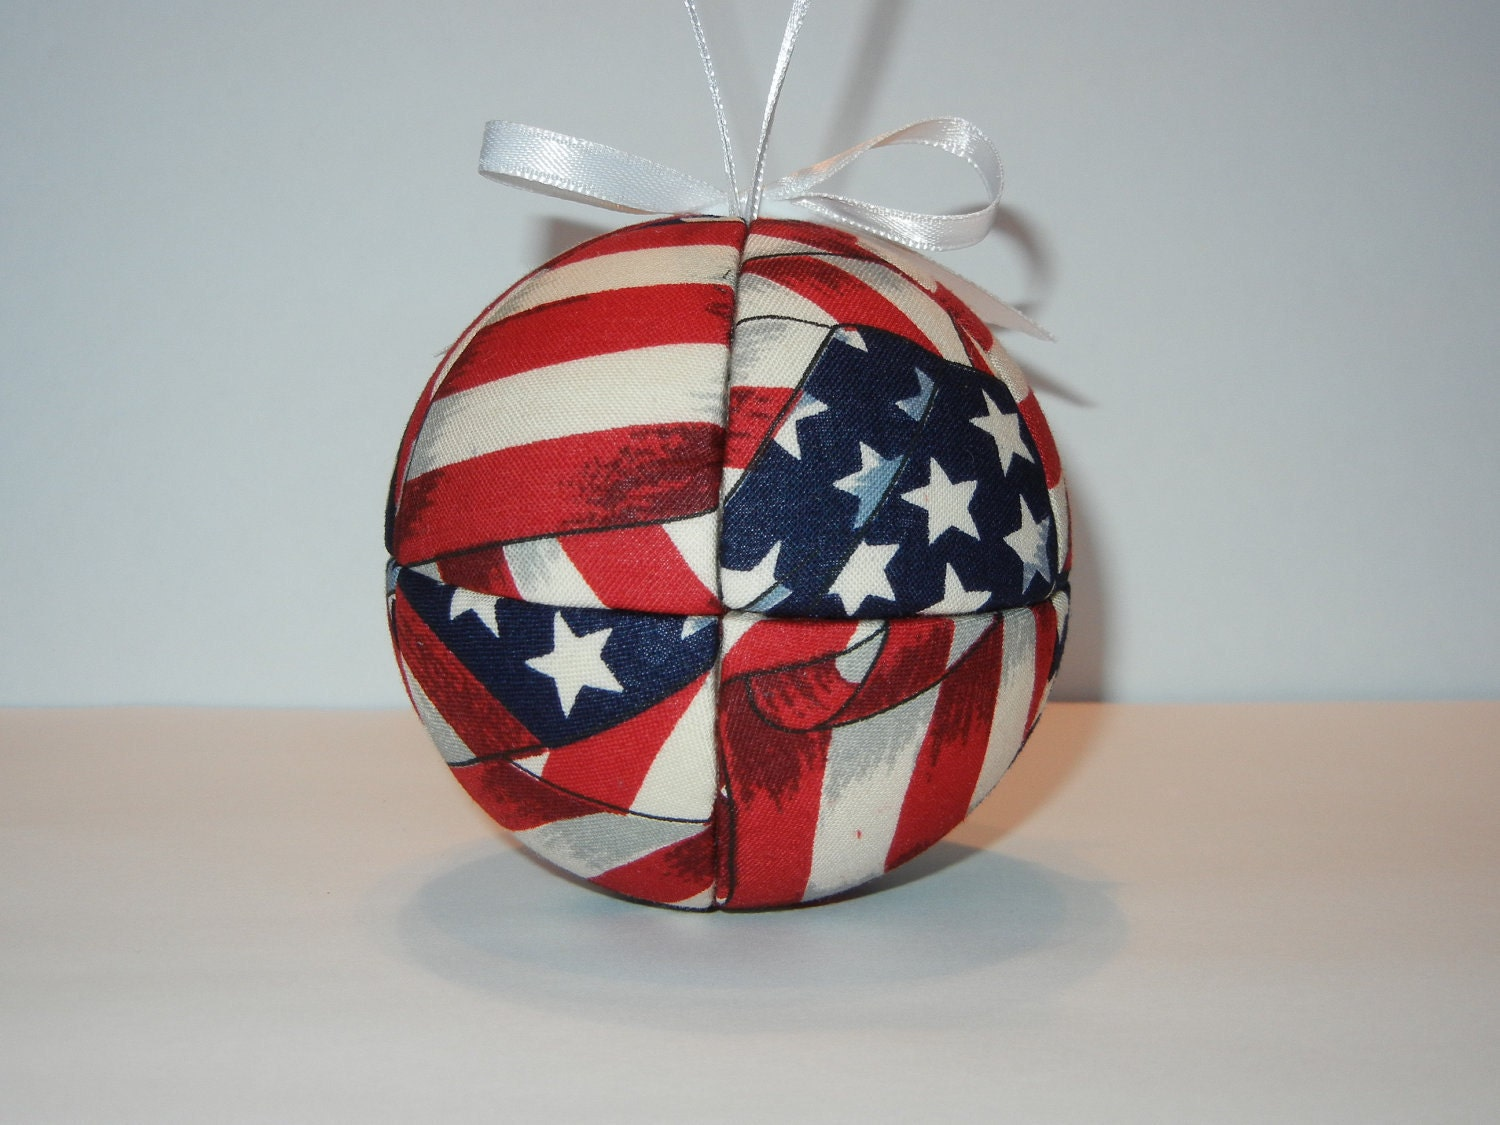 United States Marine Corp Handmade Christmas Ornament by